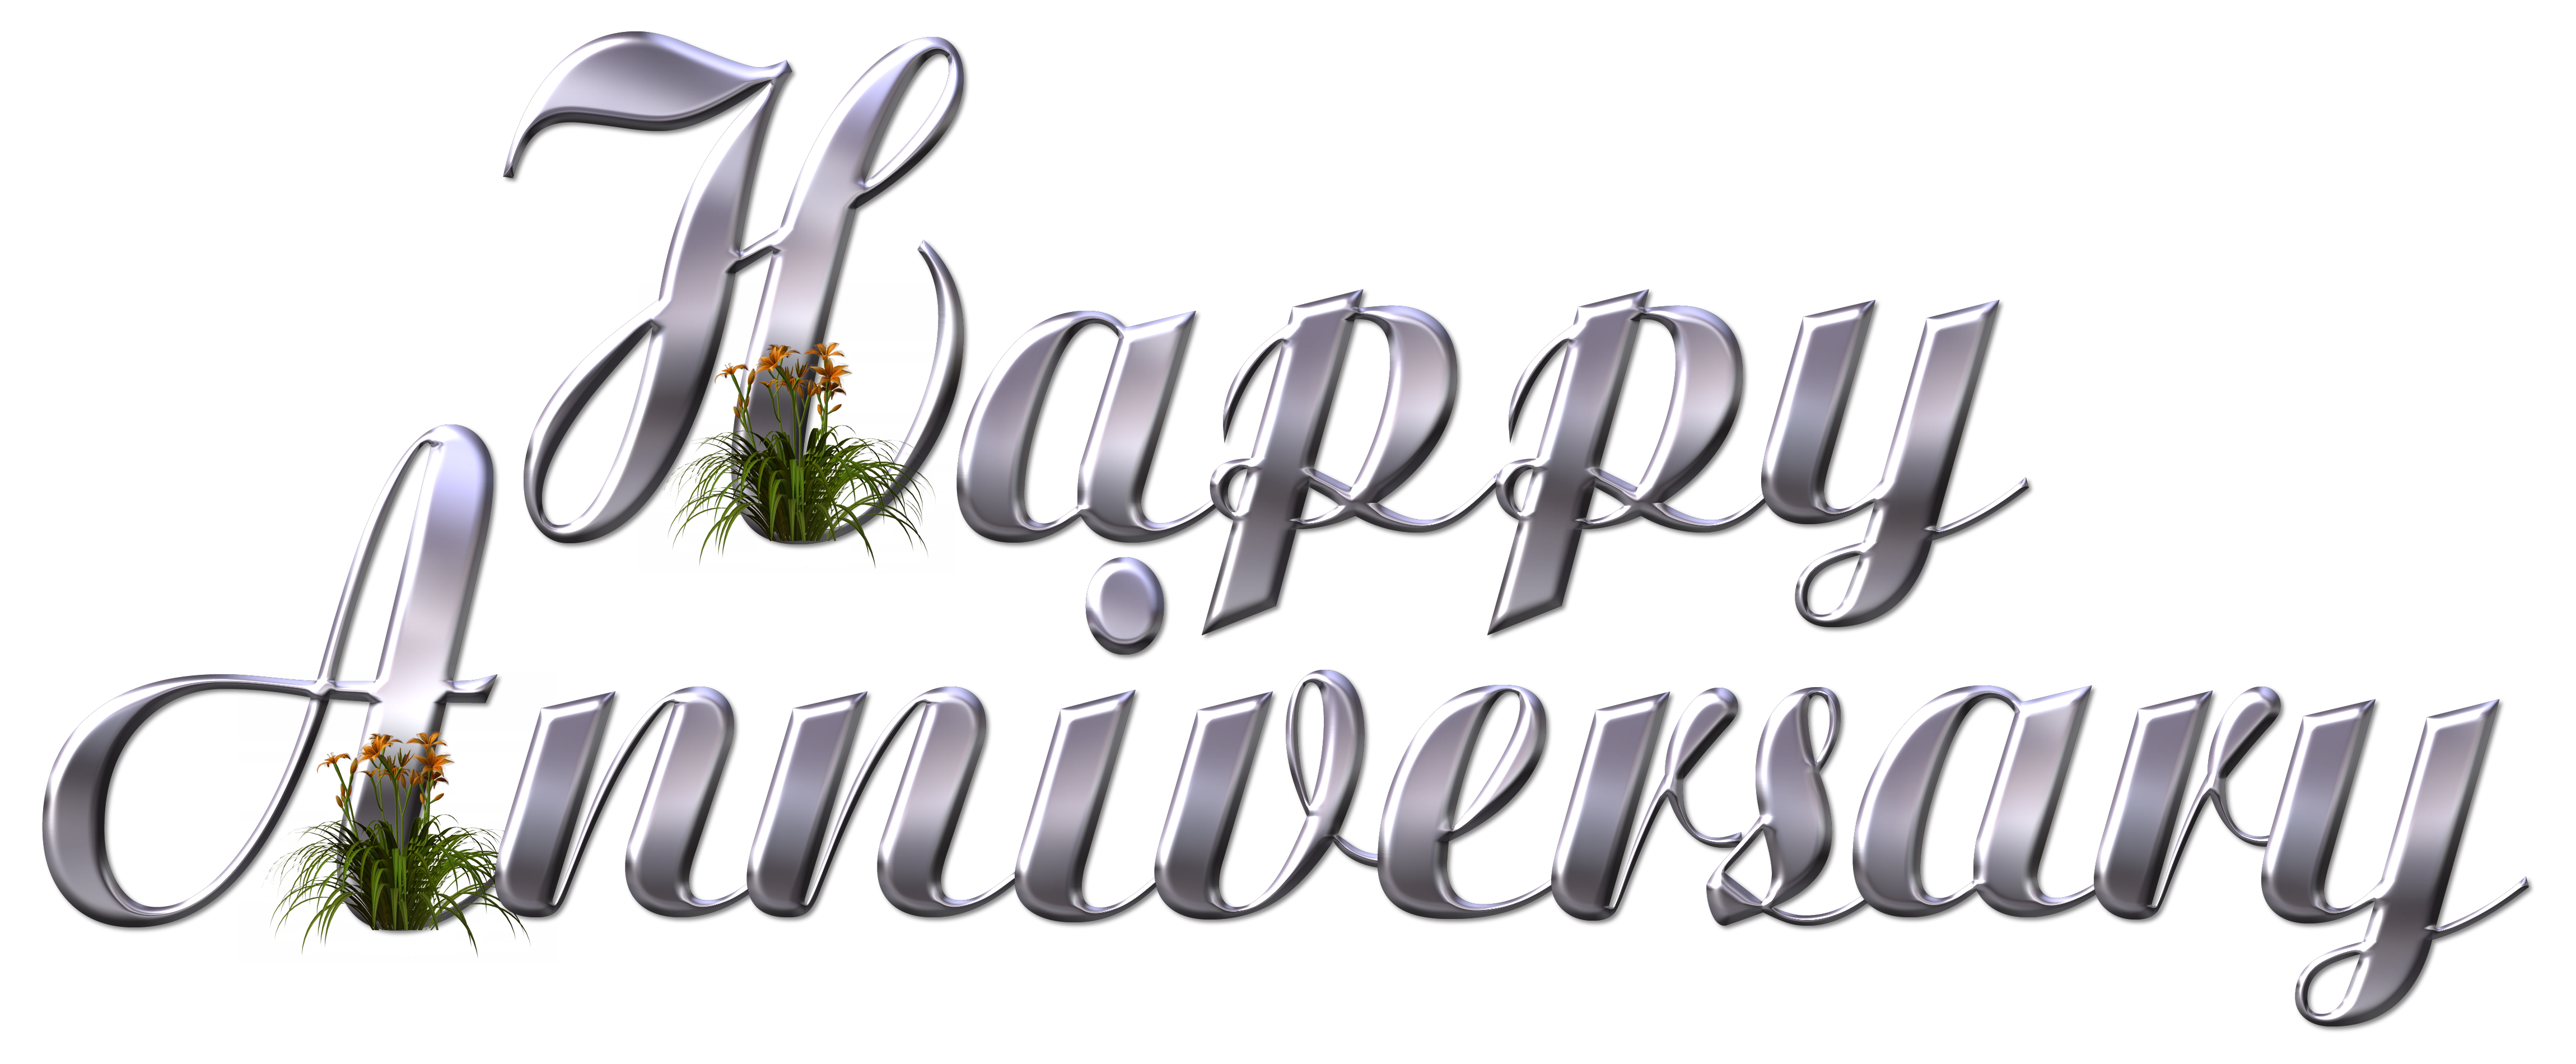 church cliparts free. Working clipart happy anniversary